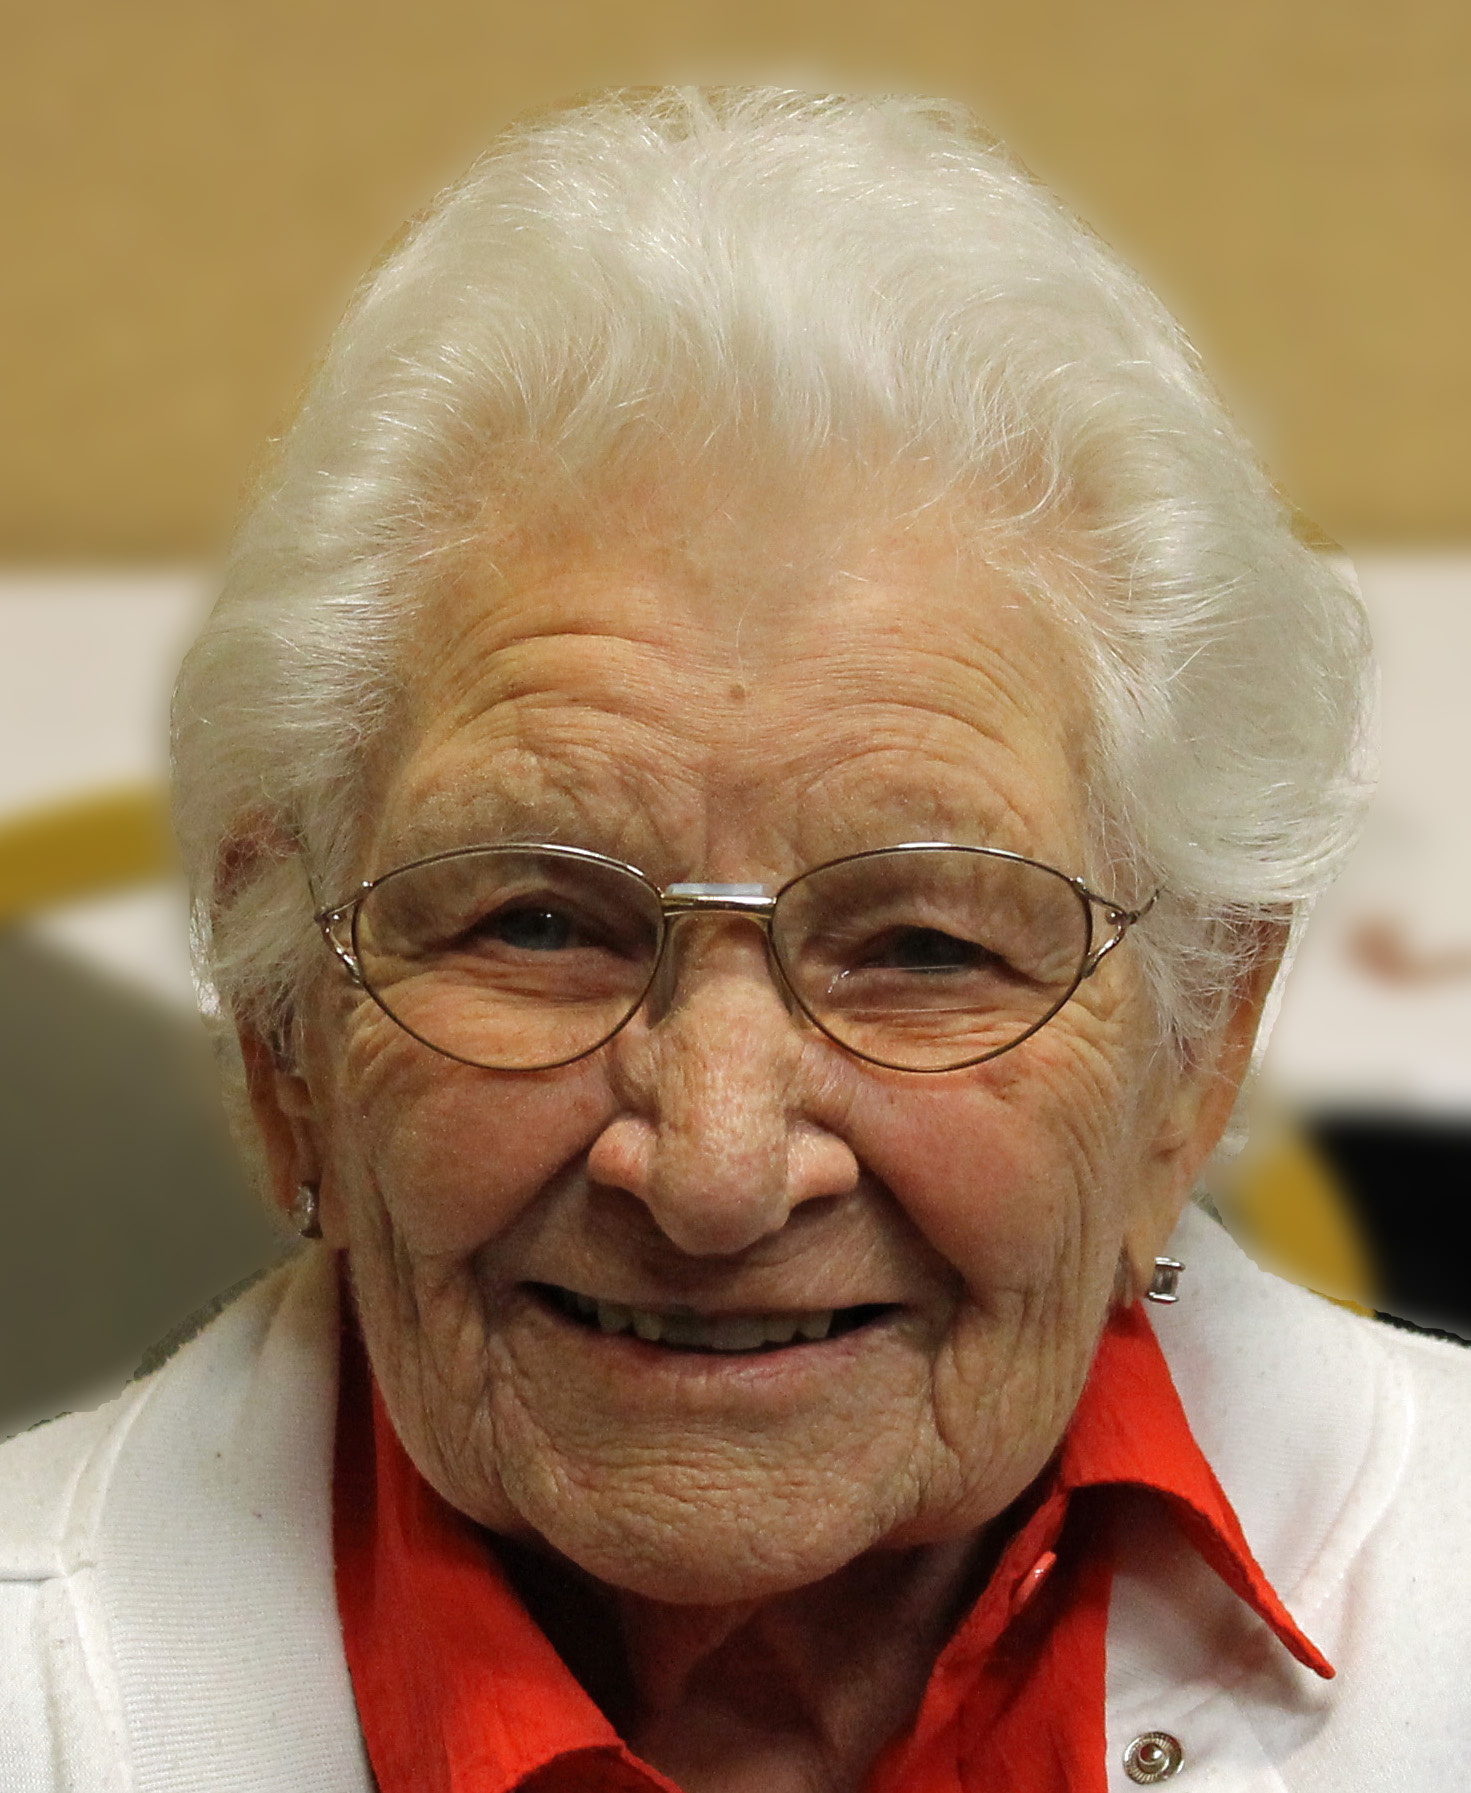 Lois Dorothy (Schmalken) Tams, 97 years of age, of Stamford